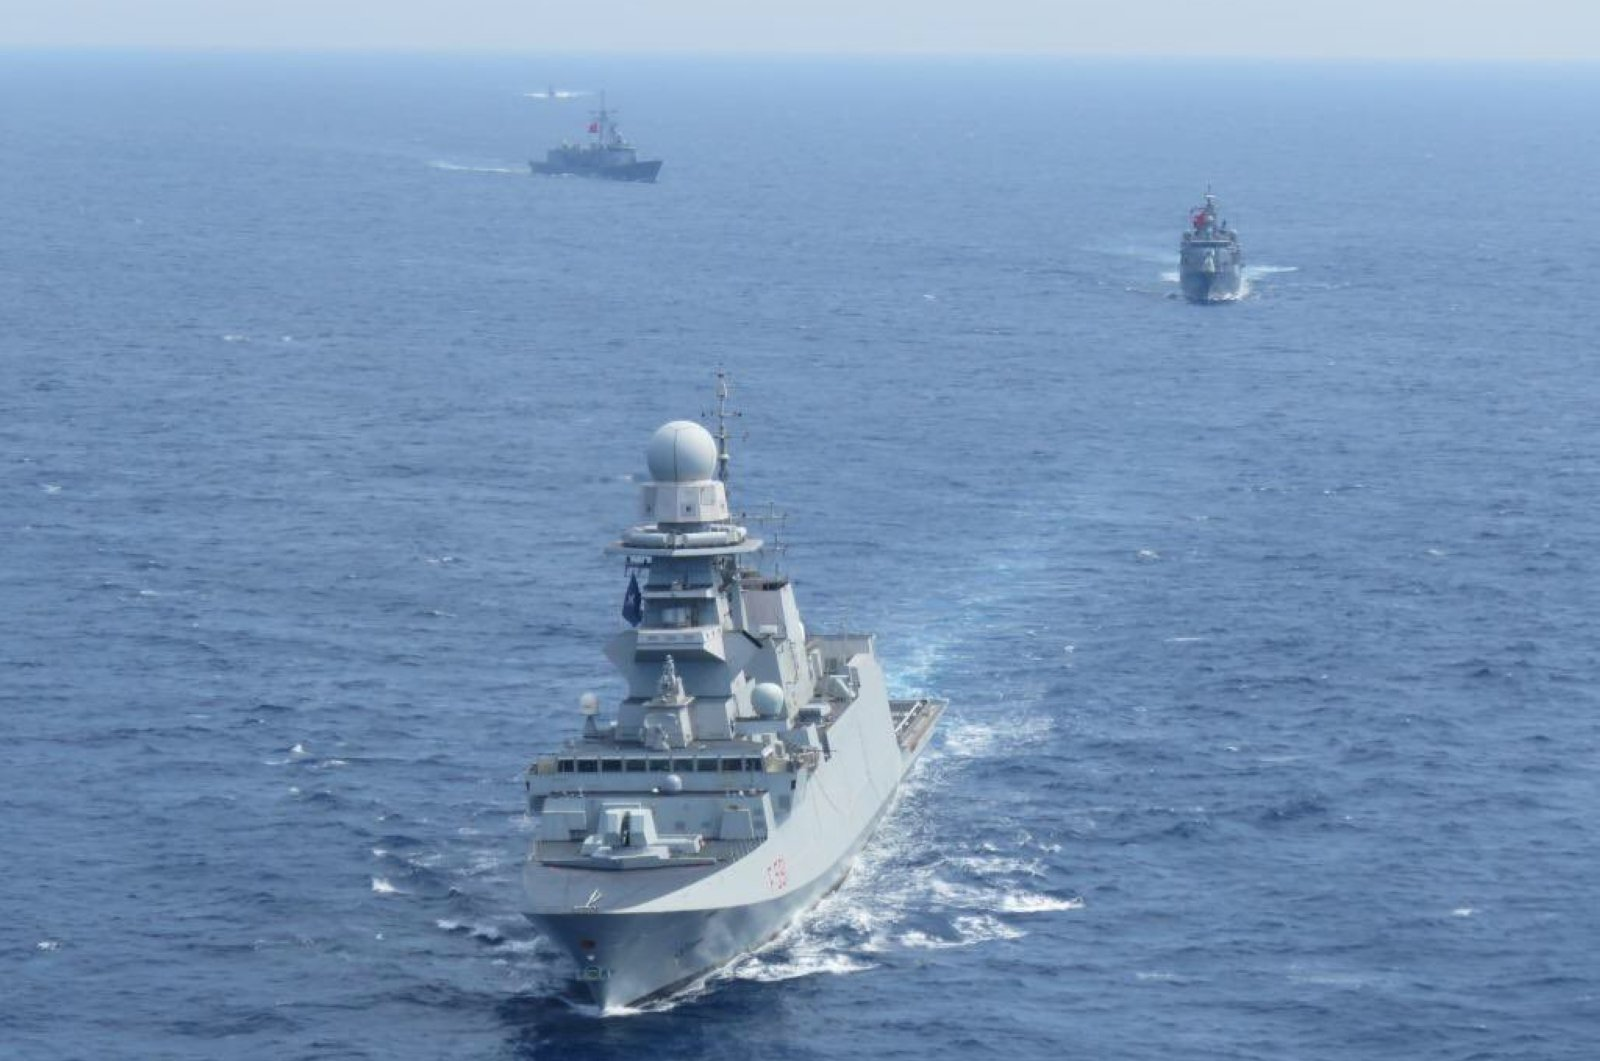 Turkish and Italian frigates take part in a joint drill in Eastern Mediterranean on Friday, April 24, 2020 (AA Photo)